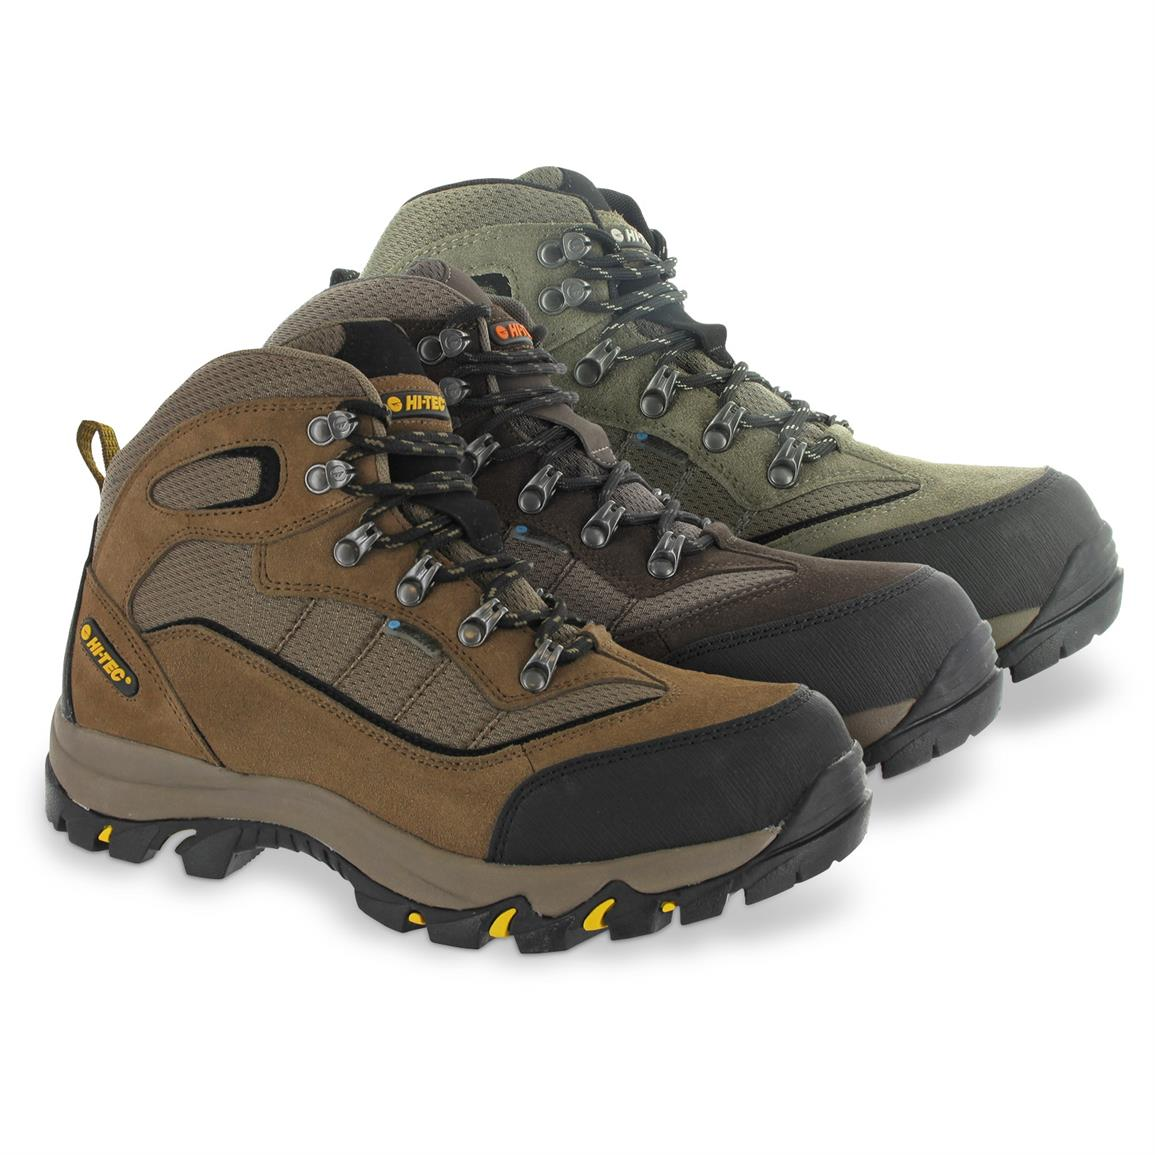 Hi-Tec Skamania Men's Mid Hiking Boots, Waterproof